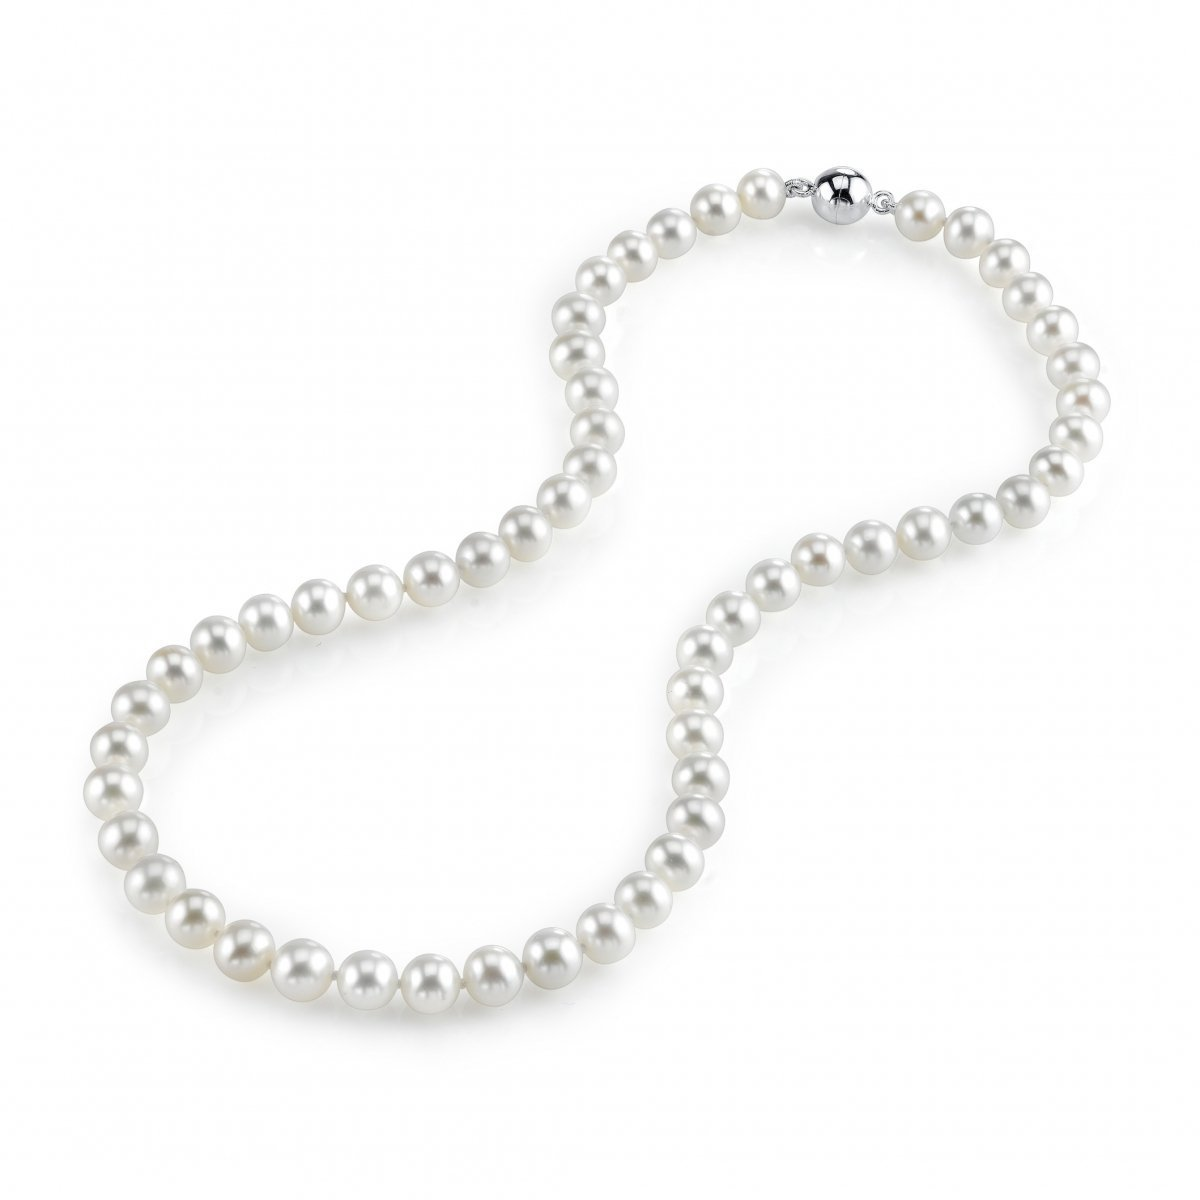 THE PEARL SOURCE 7-8mm AAA Quality White Freshwater Cultured Pearl Necklace for Women with Magnetic Clasp in 17'' Princess Length